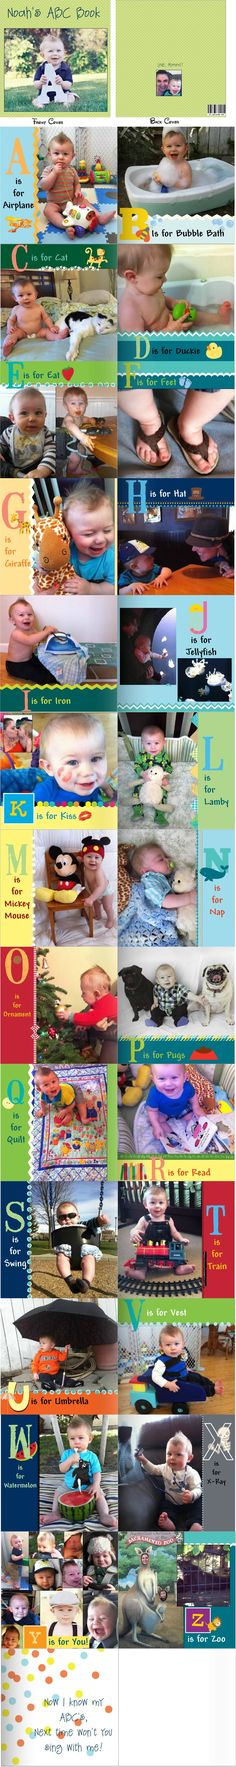 DIY ABC photobook from shutterfly. Sorry it's a repost- I was linking it to my blog :)